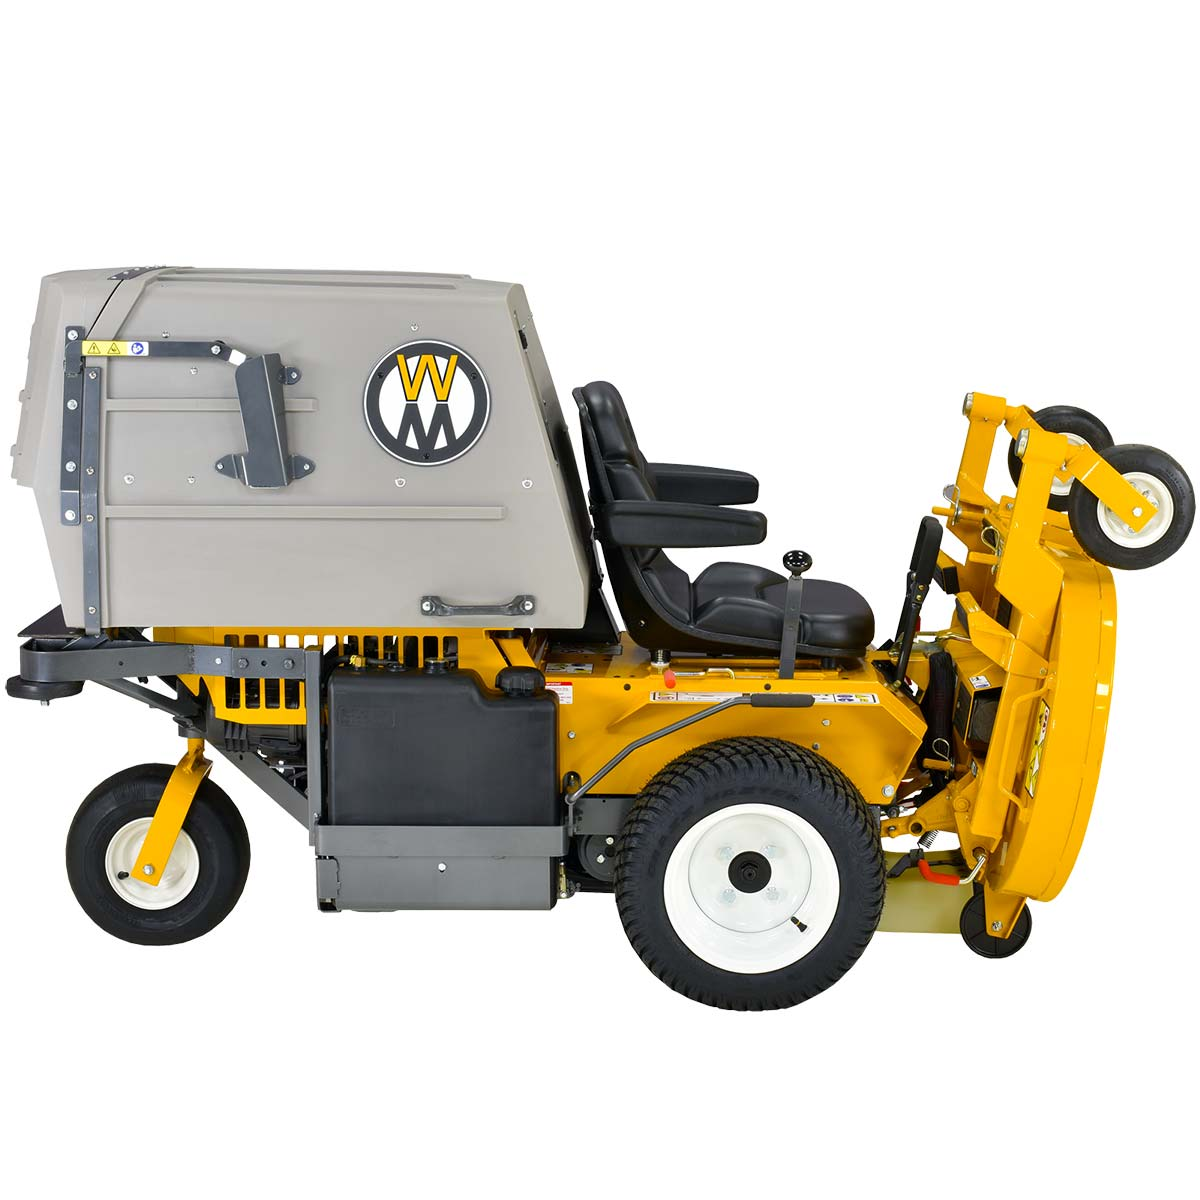 Walker Mower MC19 with deck in service position - easily change blades